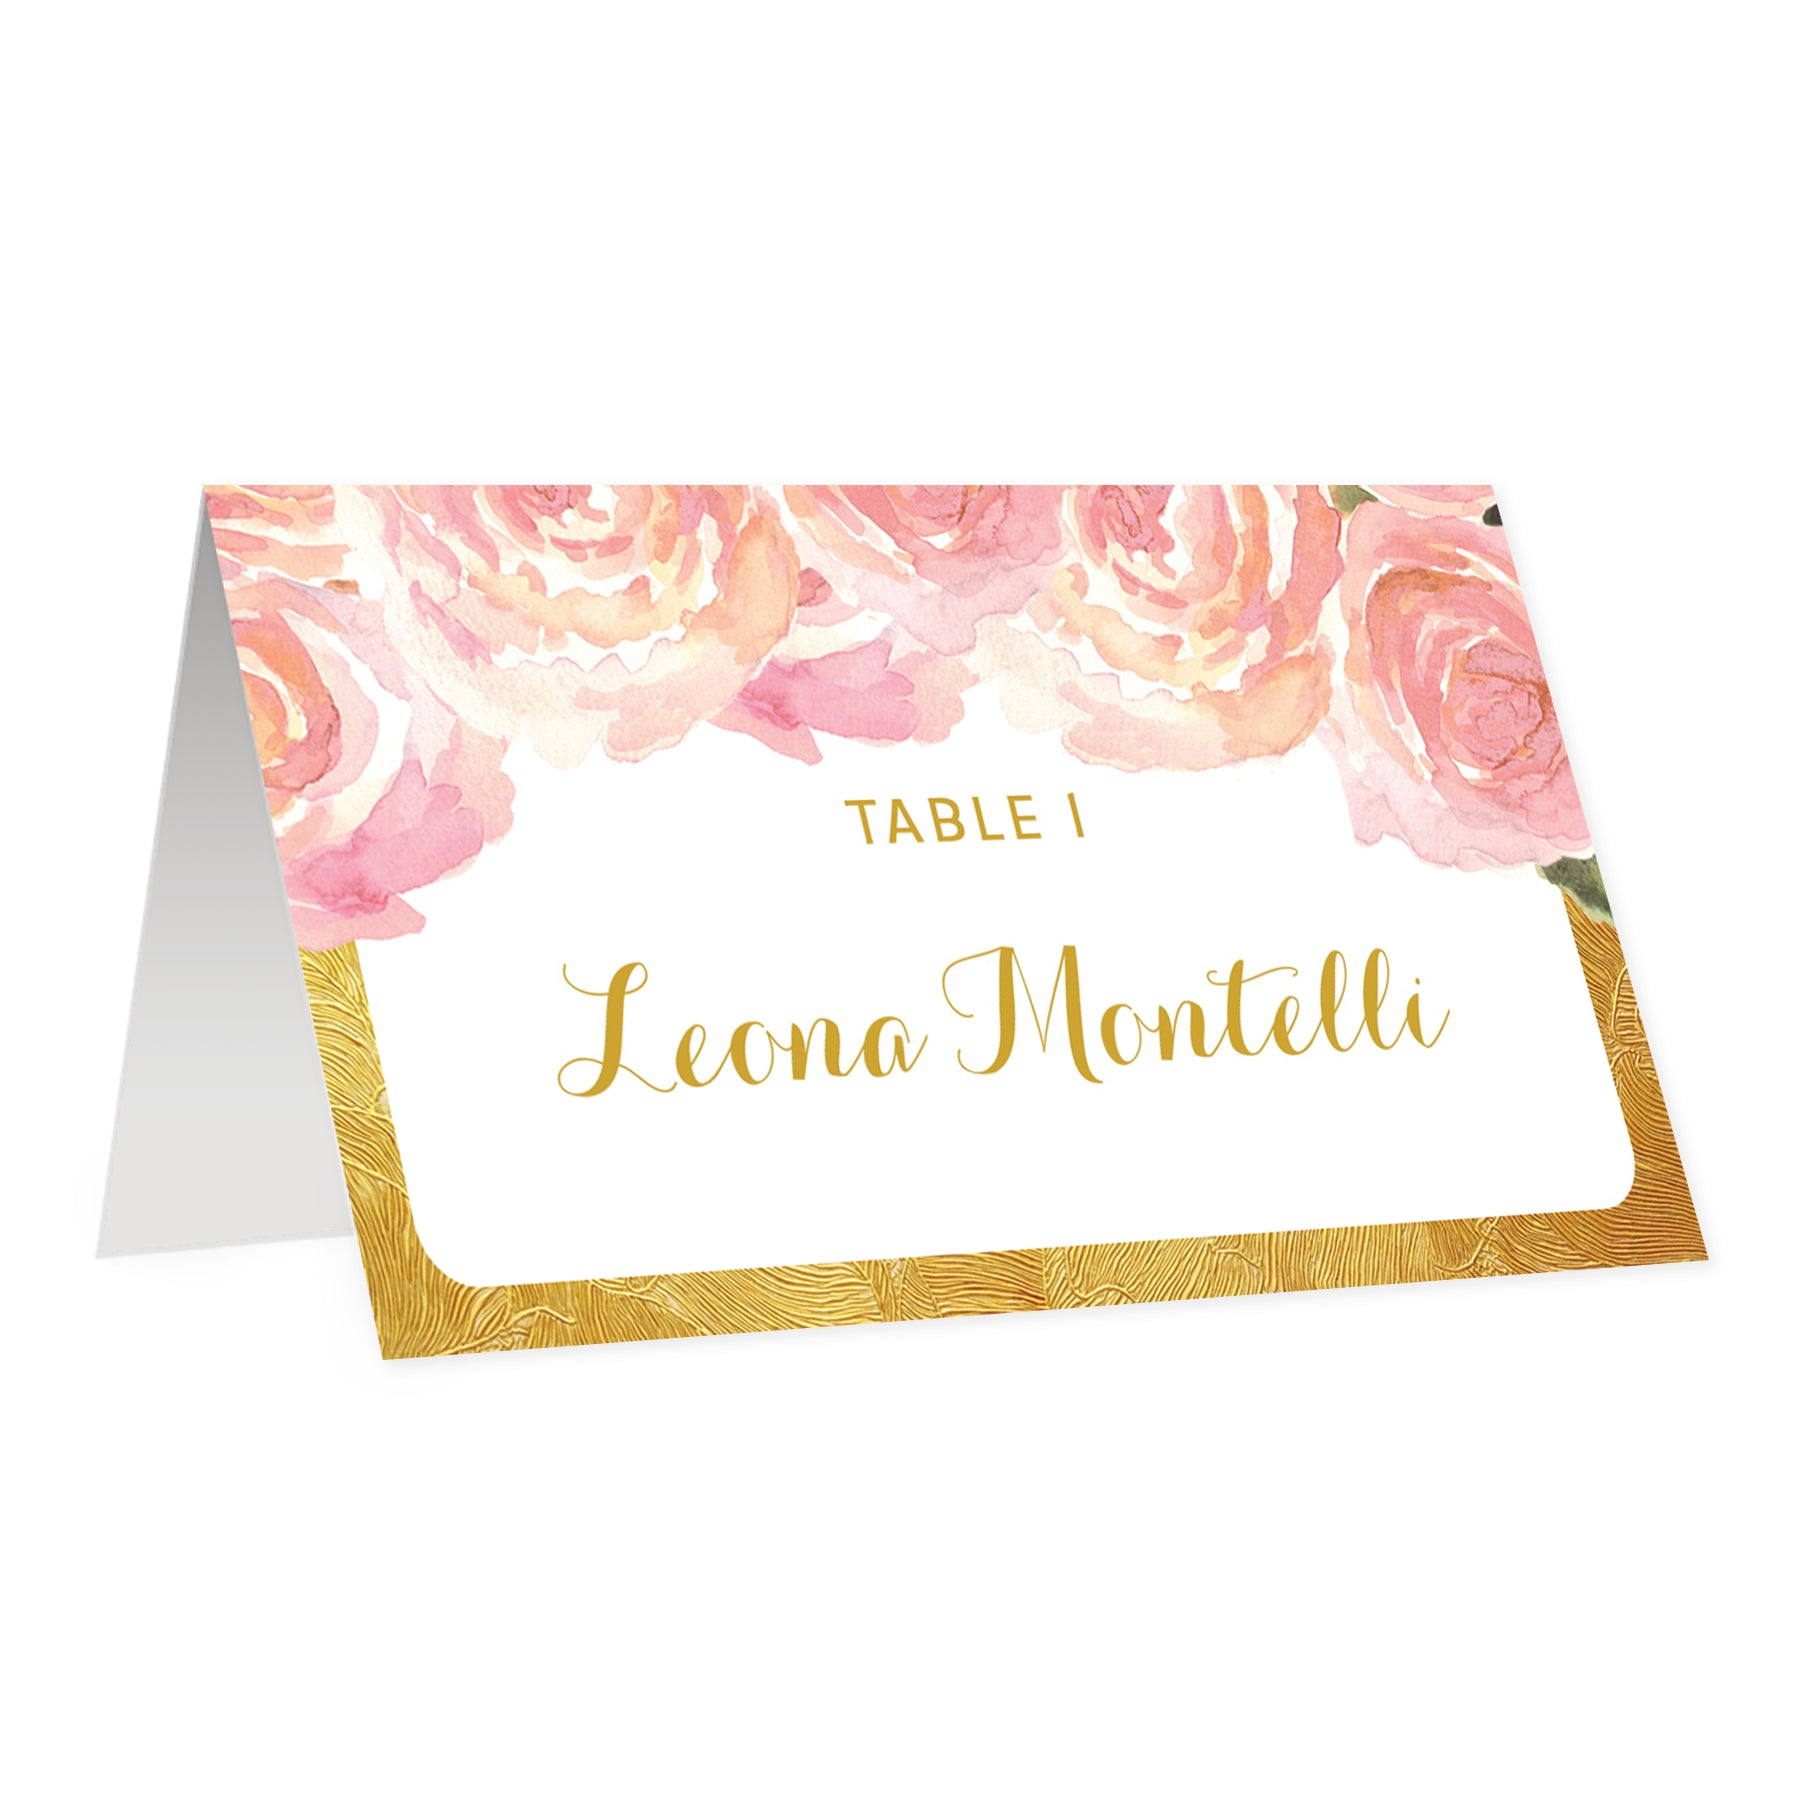 Blush Pink + Gold Place Cards | Leona